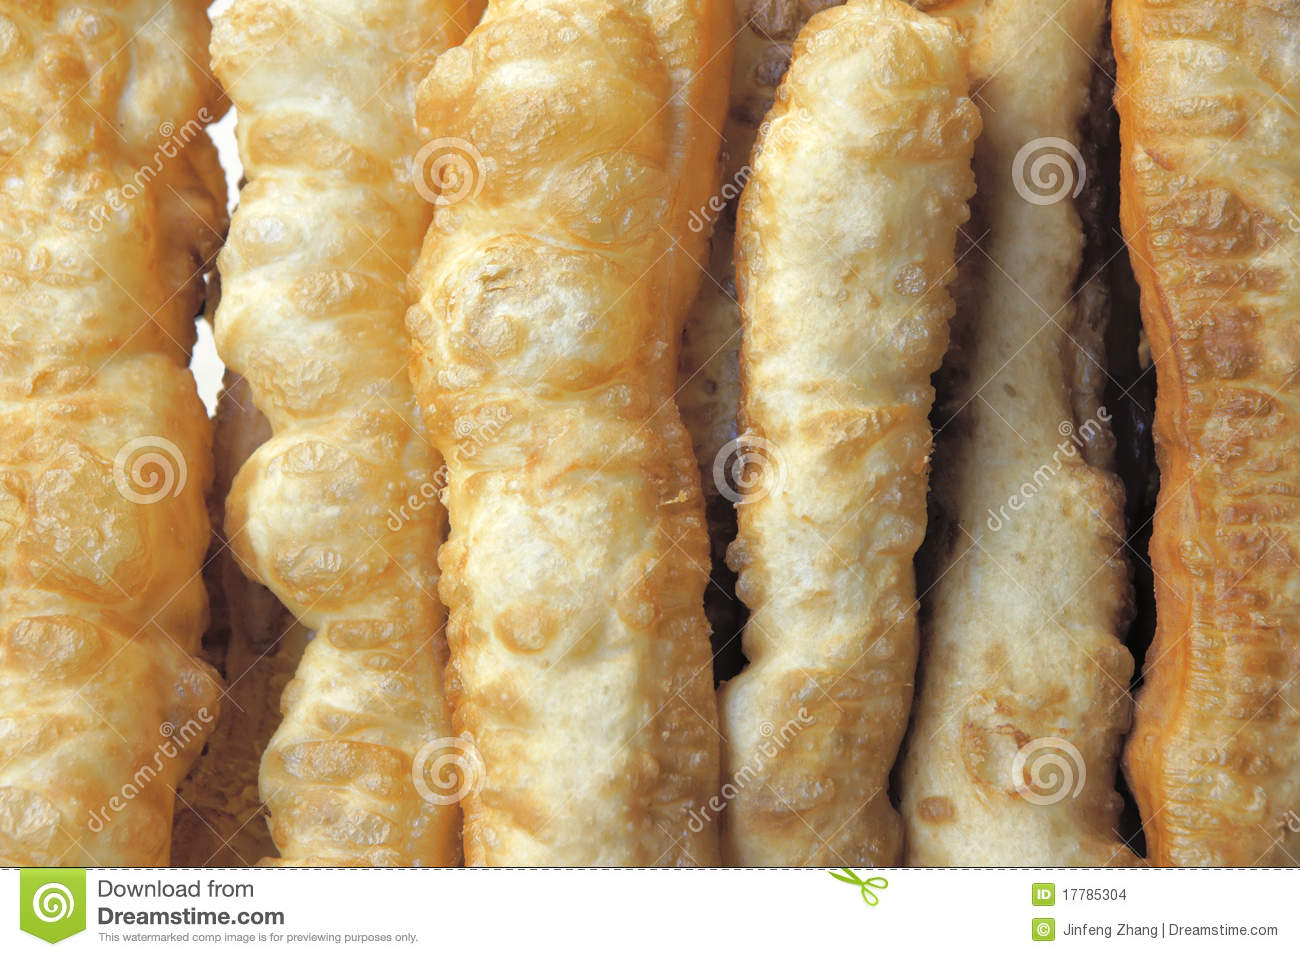 ... fried fritters. Fried fritters is one of traditional Chinese fried